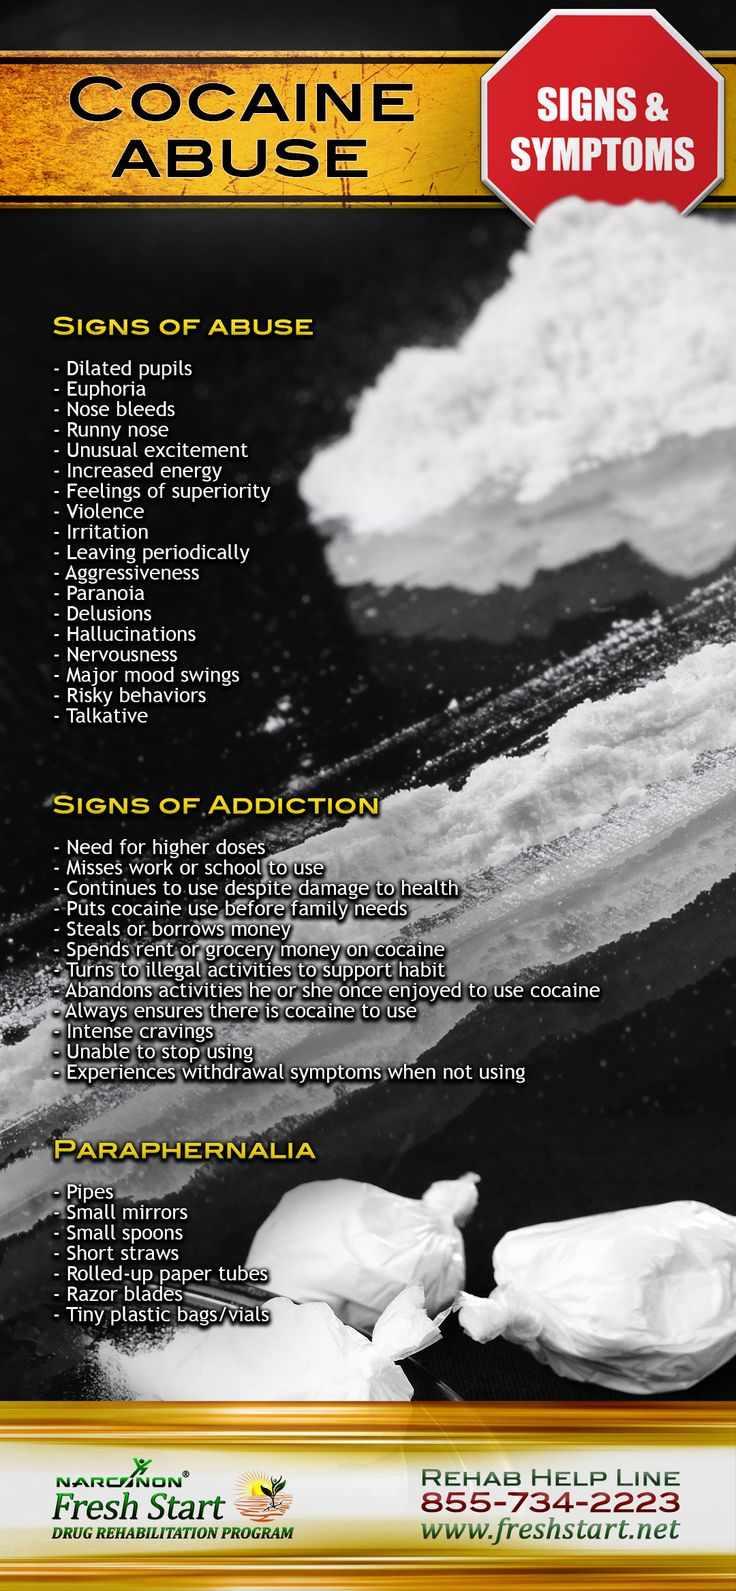 Cocaine Abuse Signs And Symptoms #cocaine #abuse #addiction #signs Learn  More About